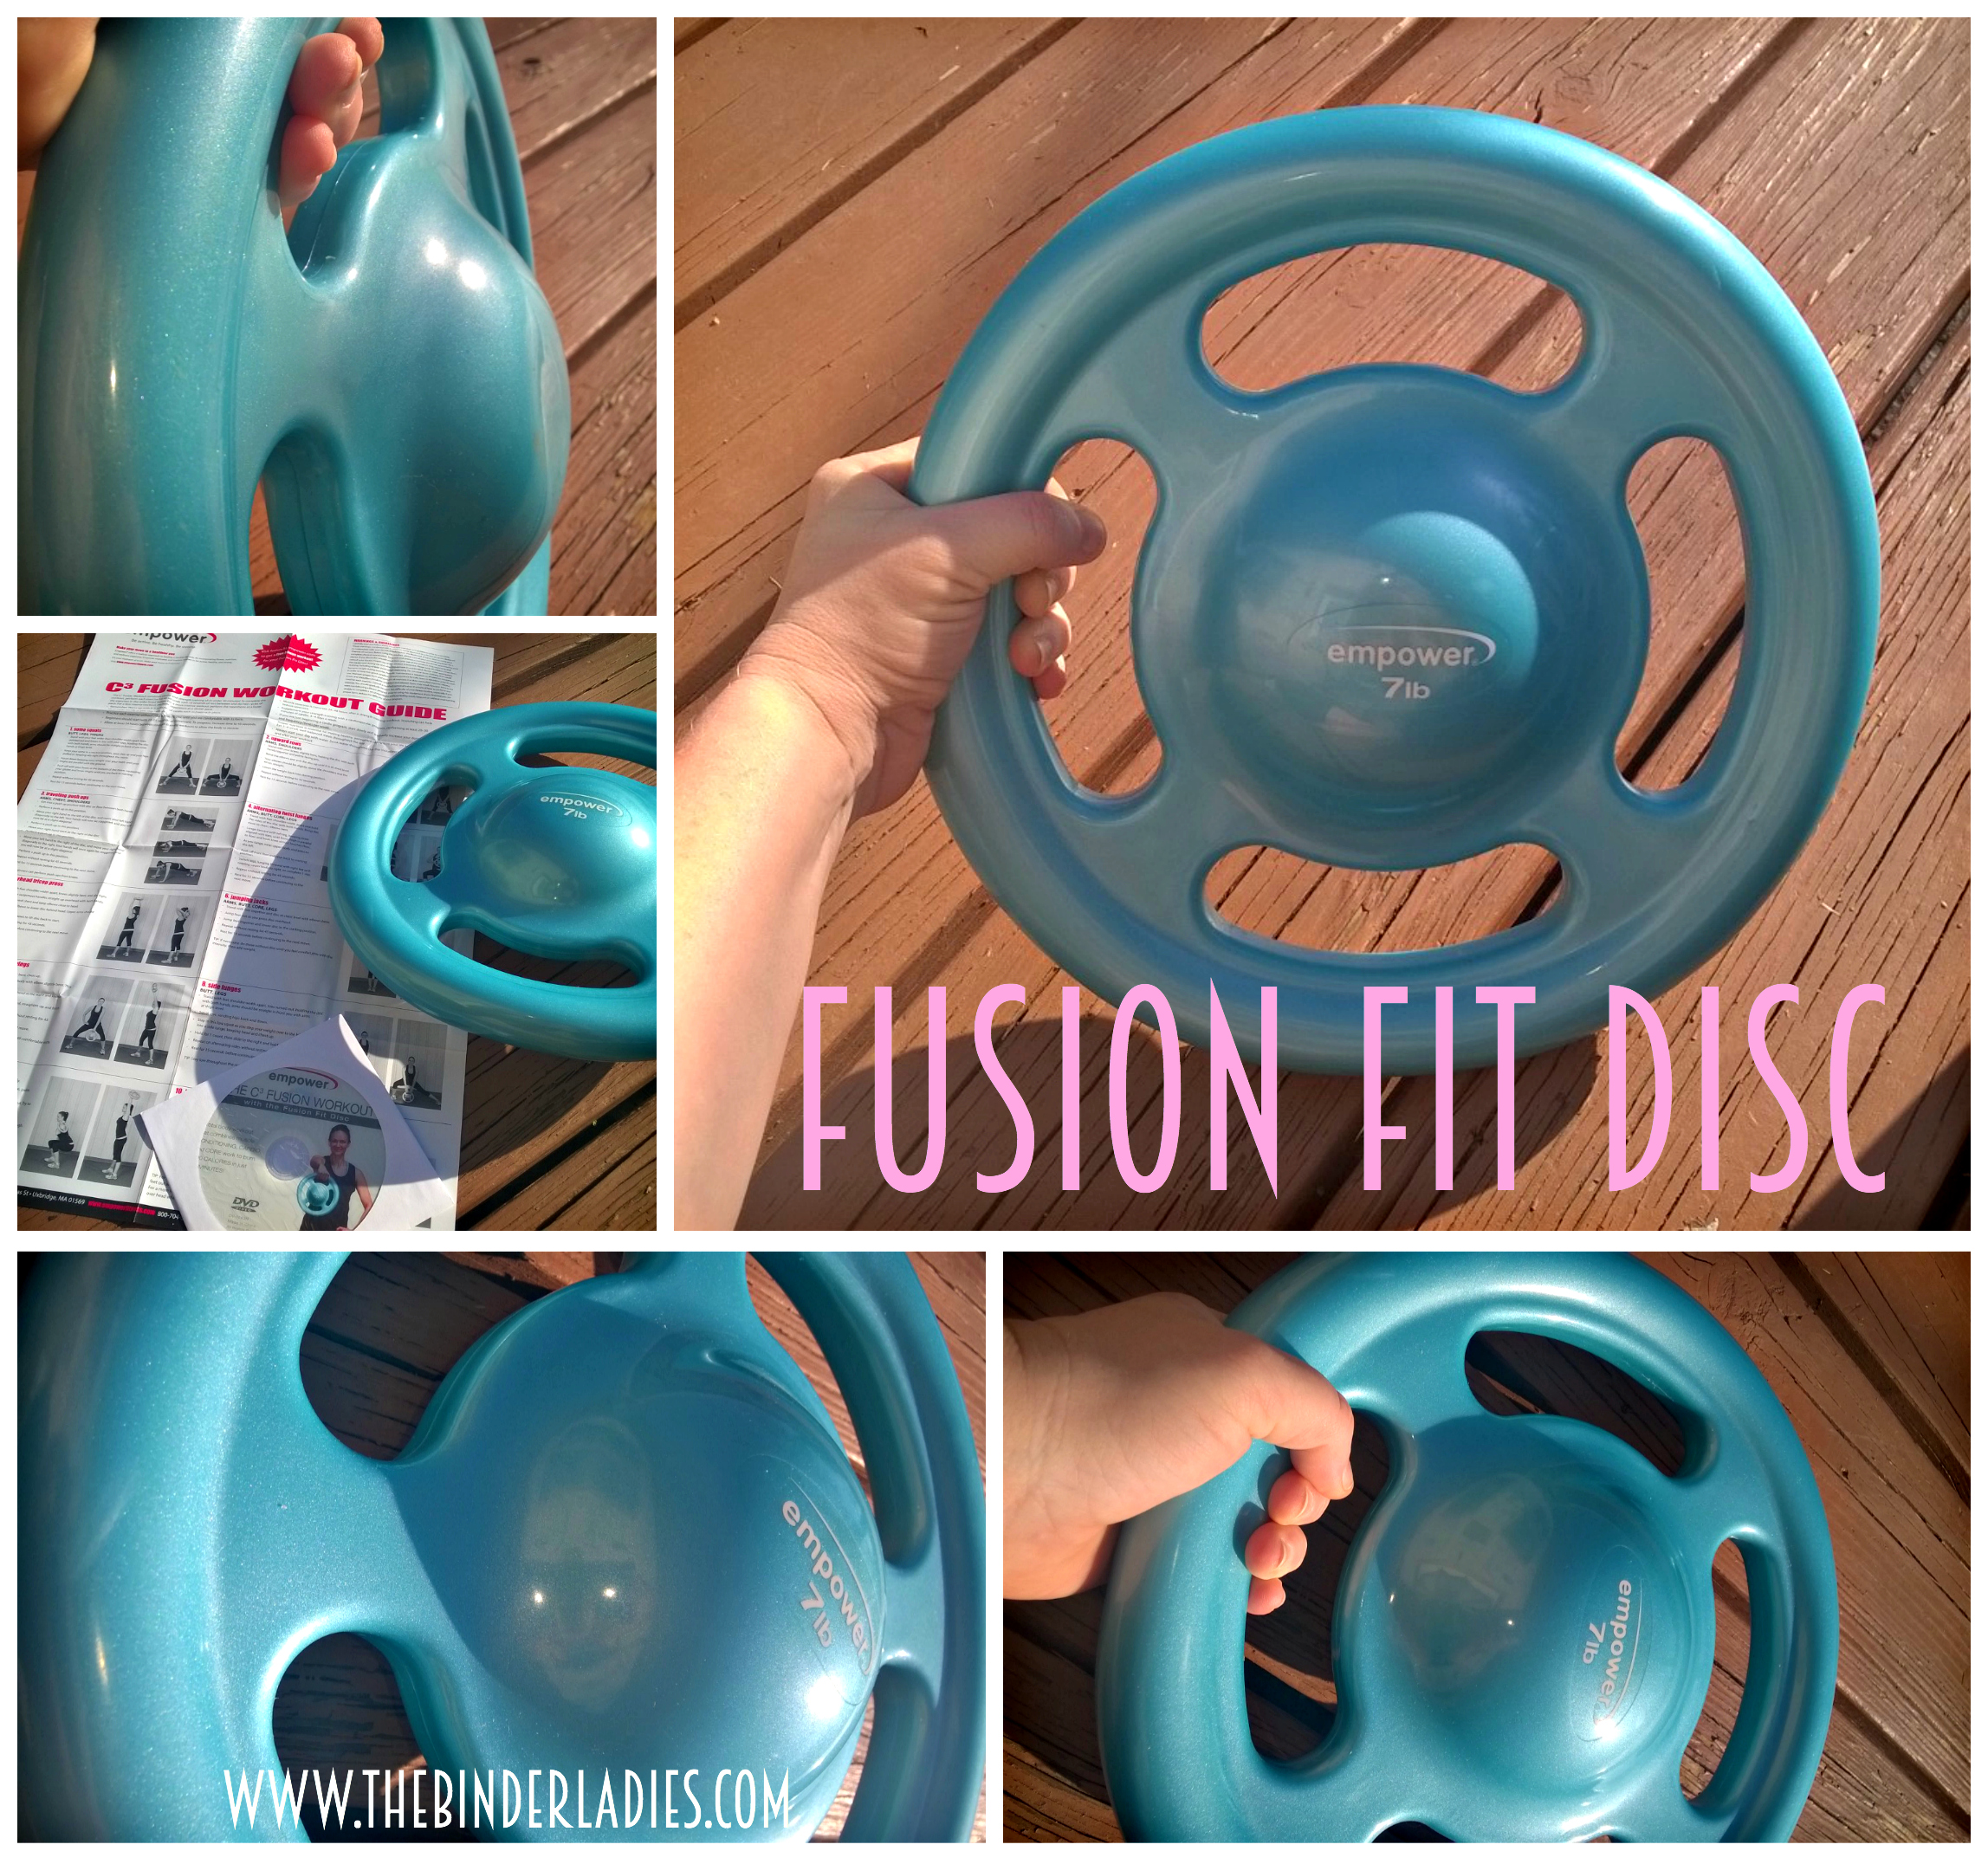 Empower Fitness Fusion Fit Disc - Workout equipment made for WOMEN!